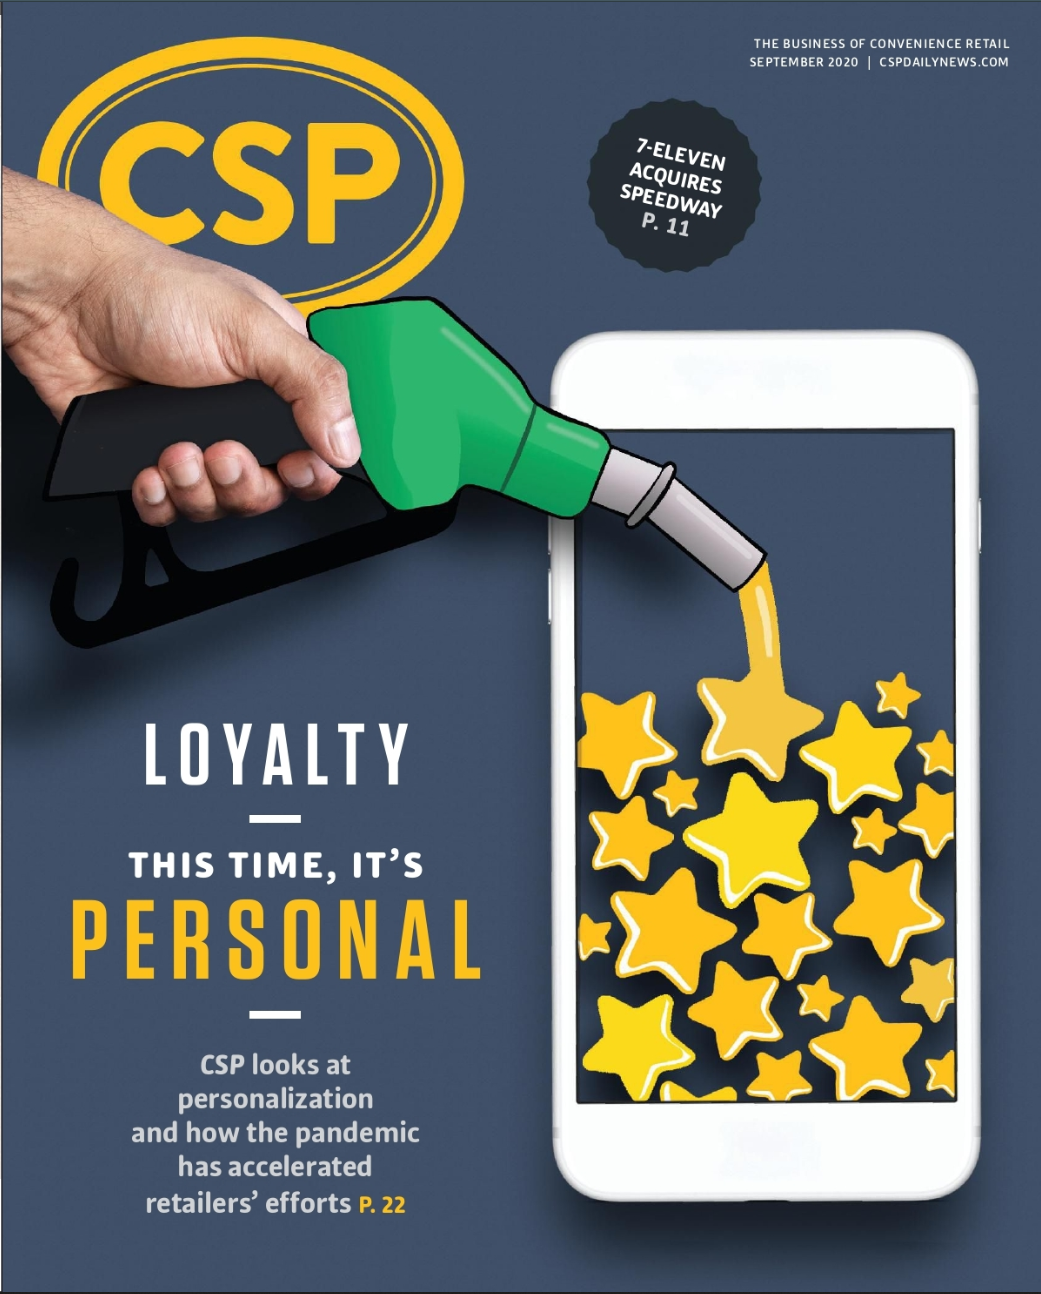 CSP Daily News Magazine Loyalty - This time, it's personal | September 2020 Issue